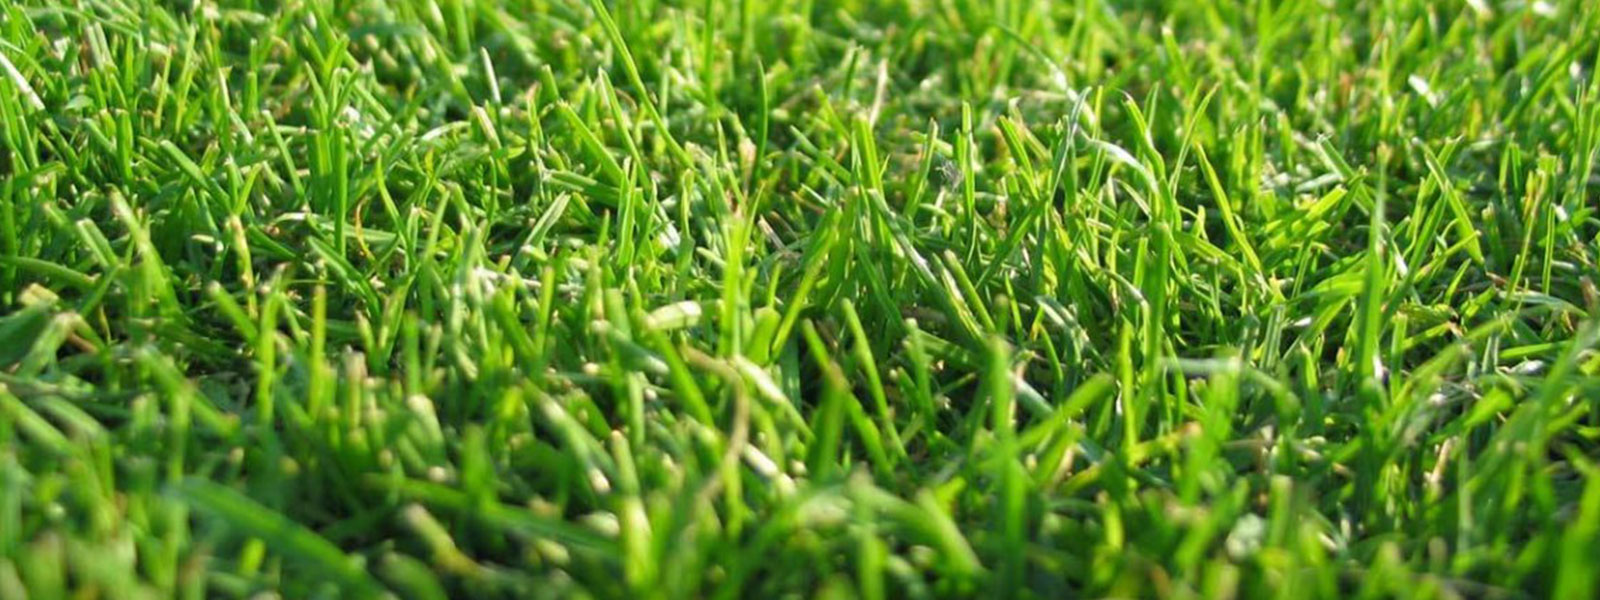 Board to Open Community's First Artificial Turf on North Shore